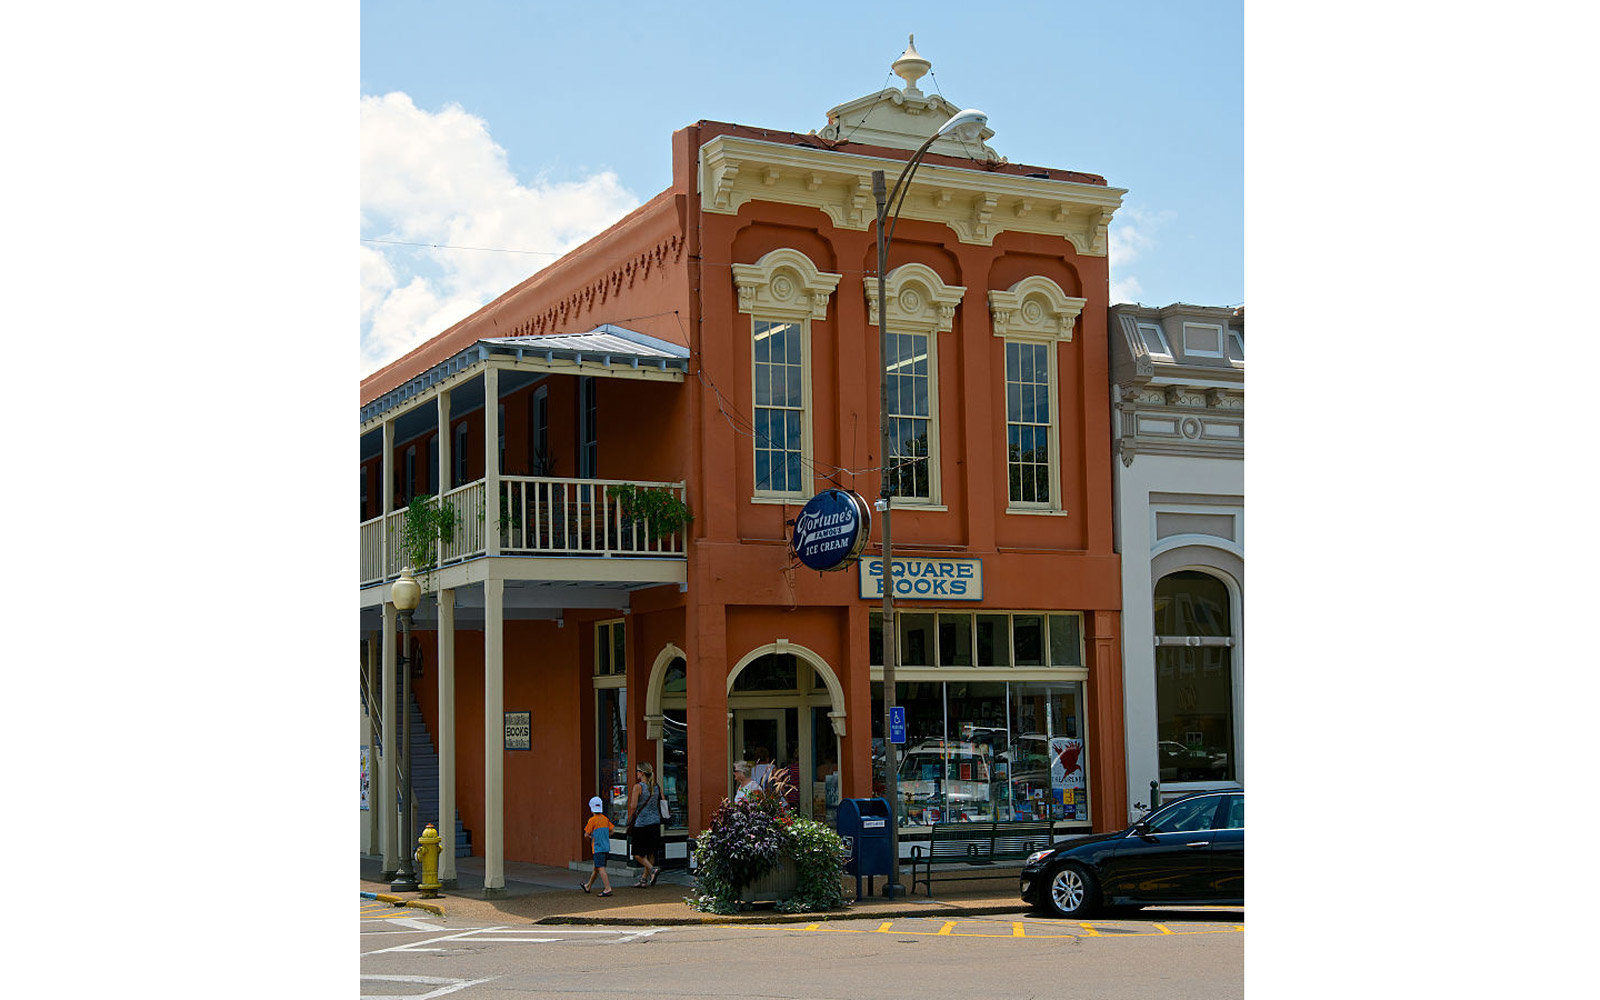 """Oxford. Mississippi 7-23-2014 The """"Square Books"""" bookstore in Oxford Mississippi. Owned by Lisa and Richard Howorth. Credit: Mark Reinstein (Photo by Mark Reinstein/Corbis via Getty Images)"""